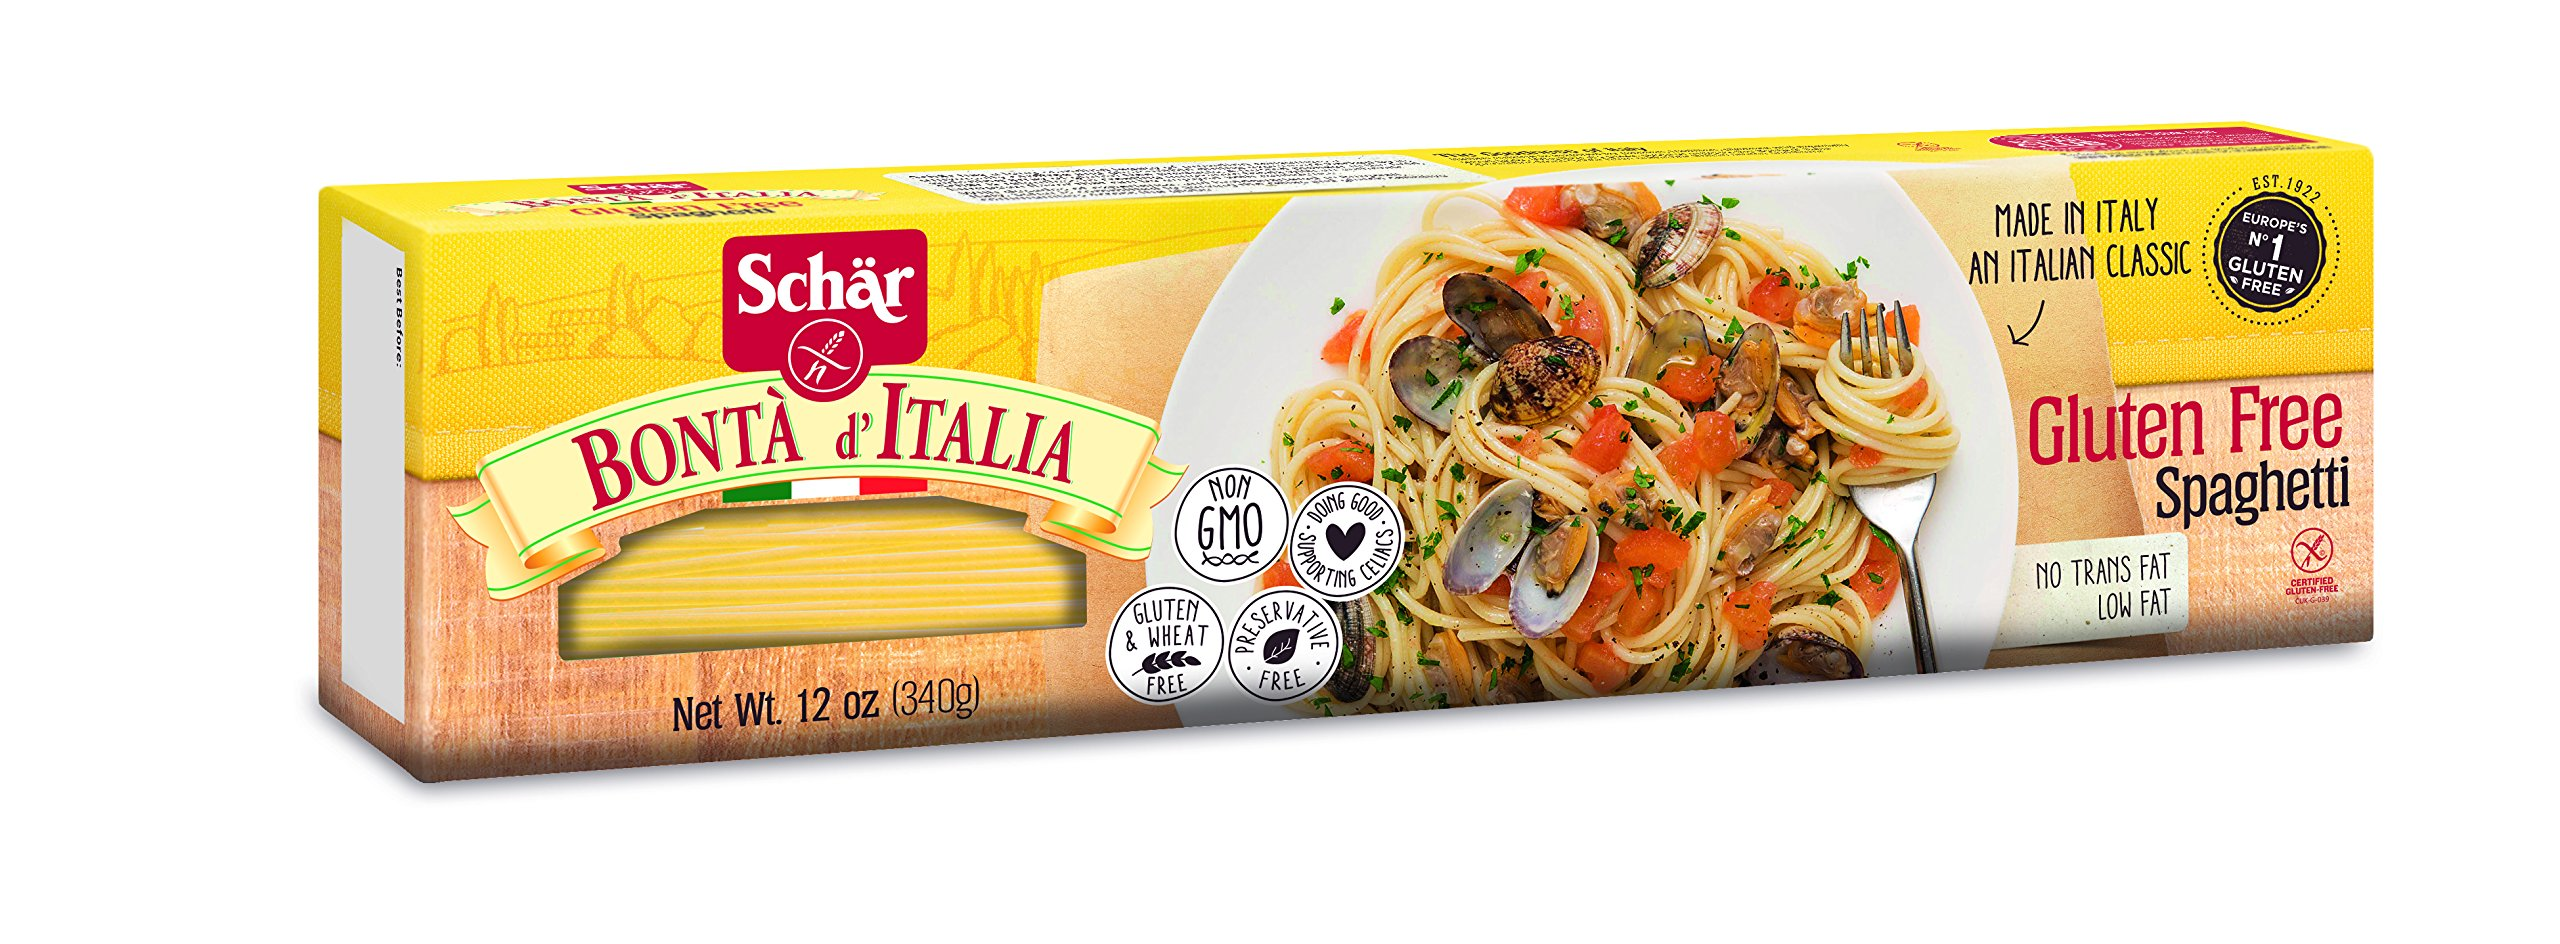 Schar Naturally Gluten-Free Spaghetti, 12-Ounce Packages (Pack of 5) by Schar